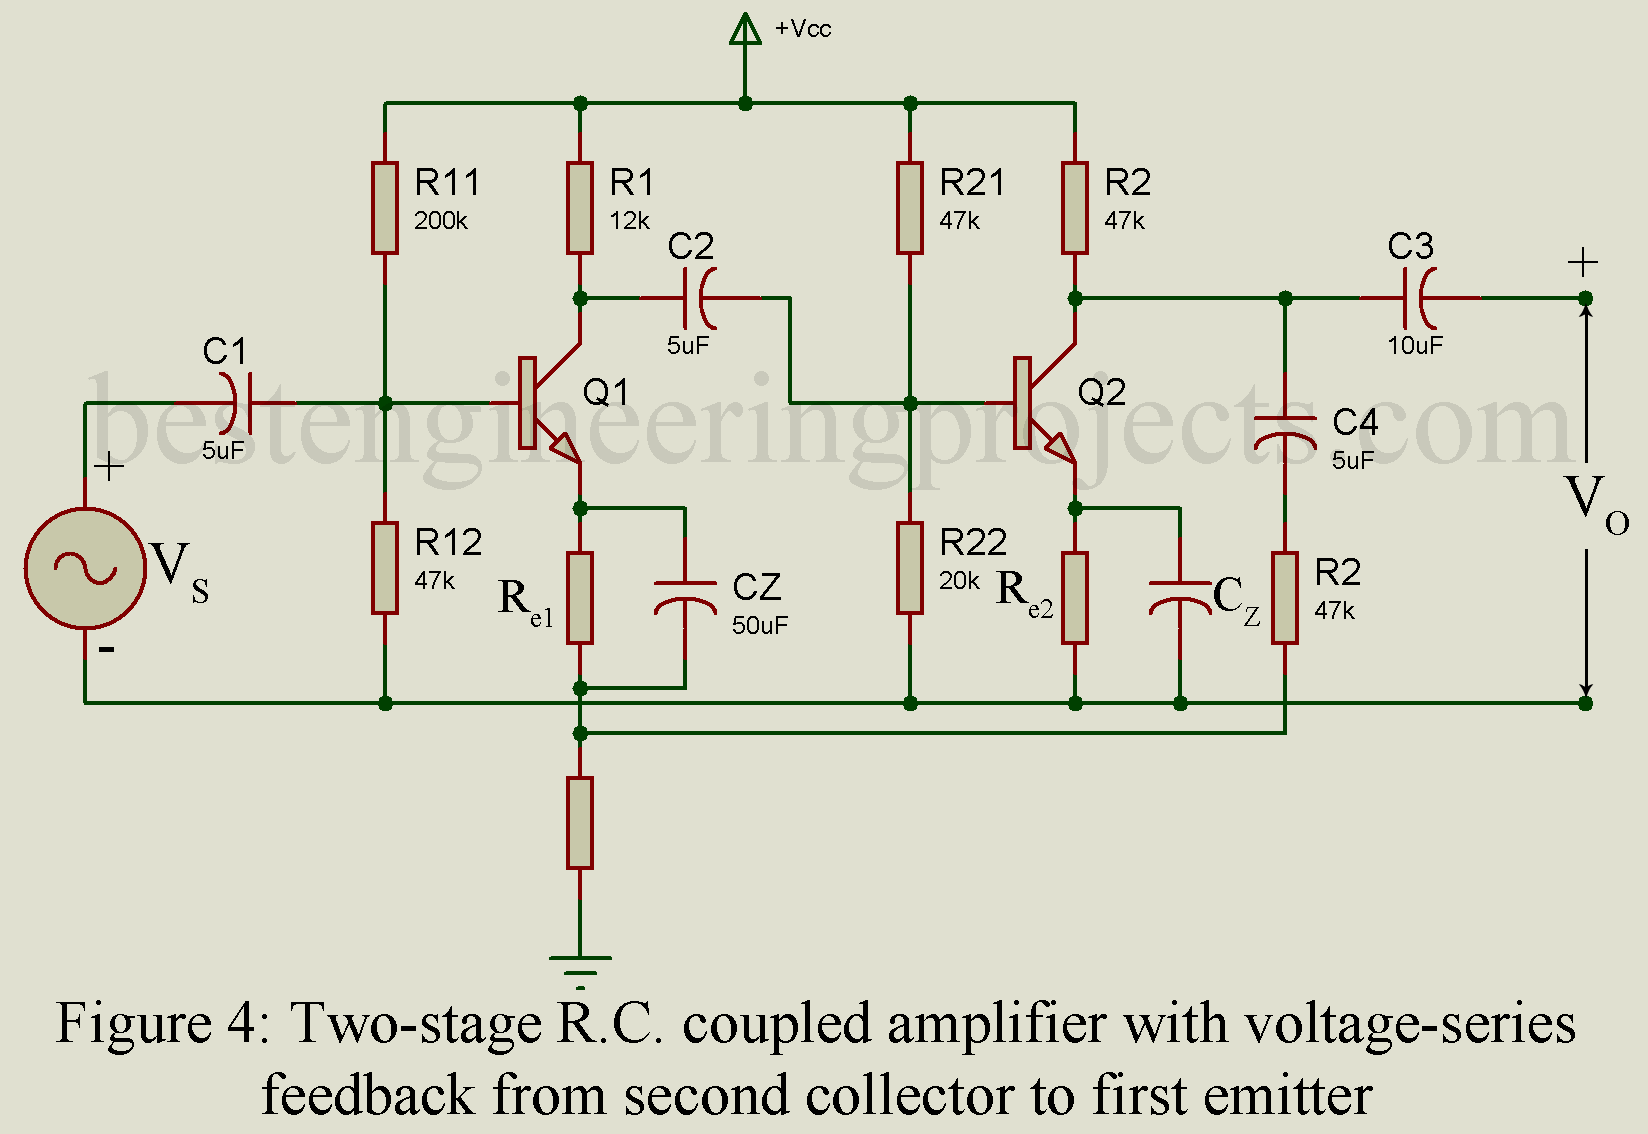 hight resolution of the collector of the second stage is connected to the emitter of the first stage through a voltage divider network r1 r2